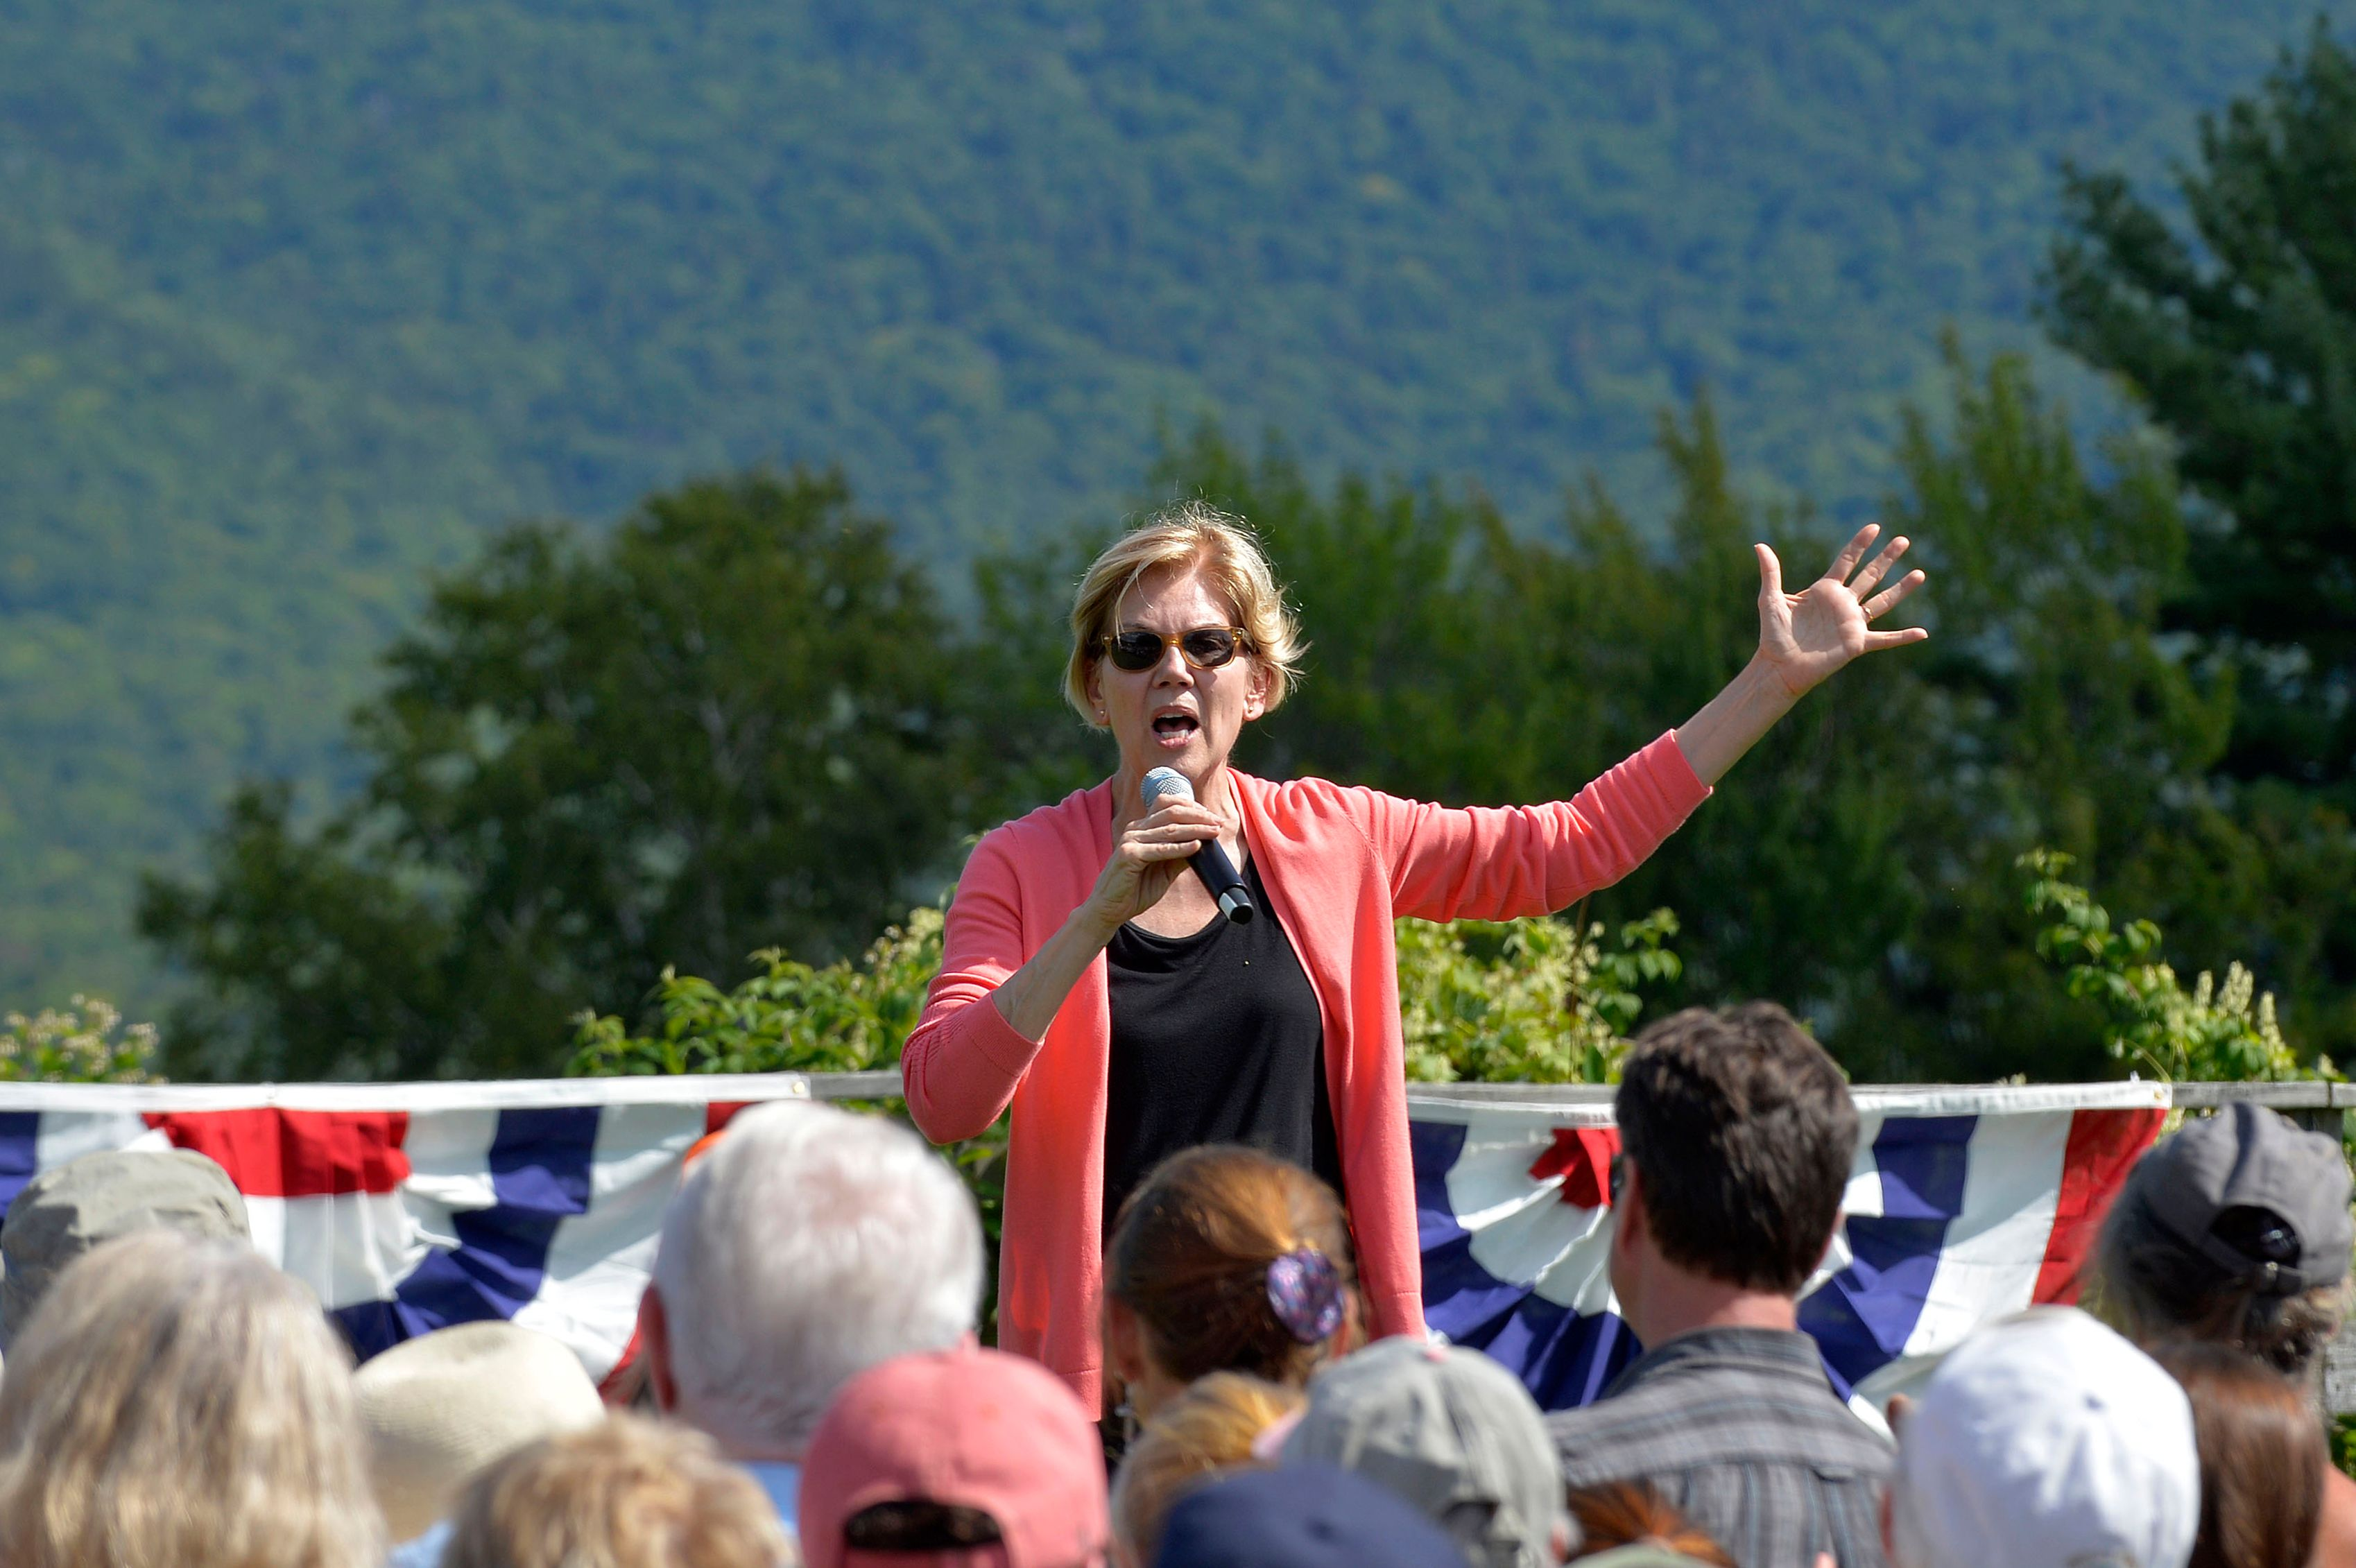 Scorecard: How do Joe Biden, Bernie Sanders, and Elizabeth Warren measure up in N.H.?